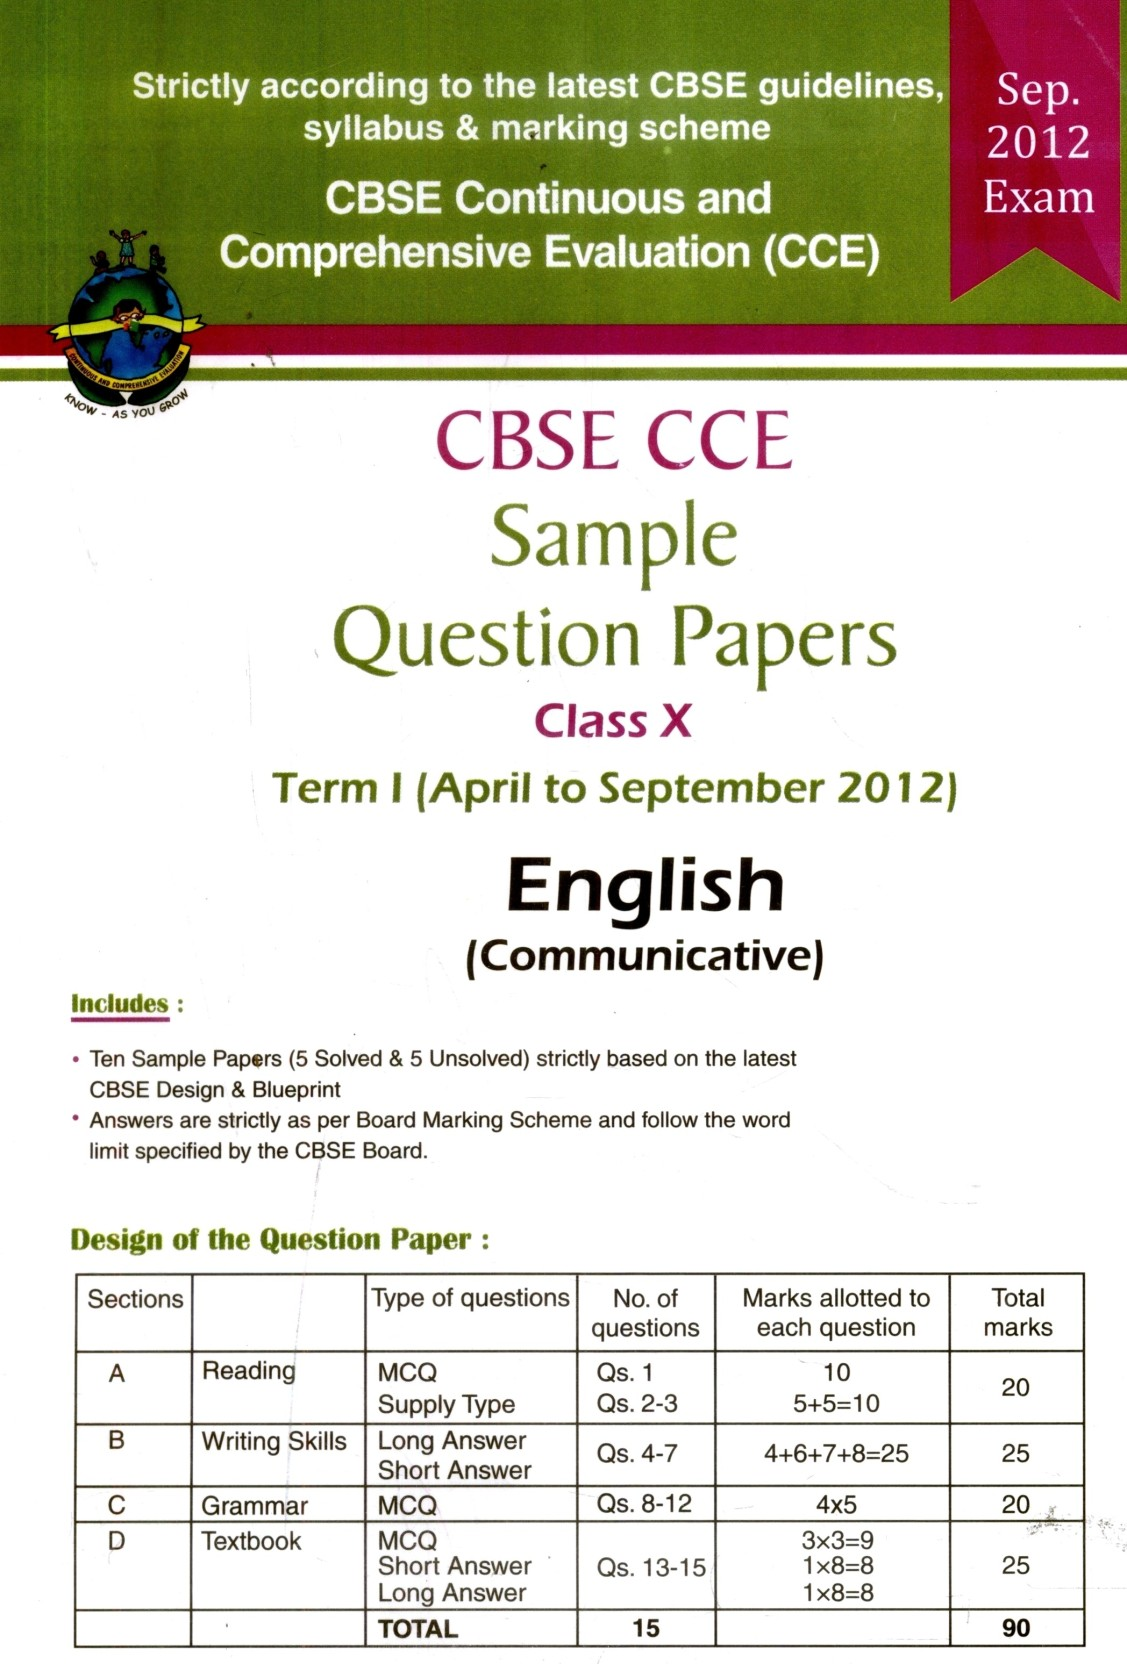 CBSE CCE Sample Question Papers Term I (April to September